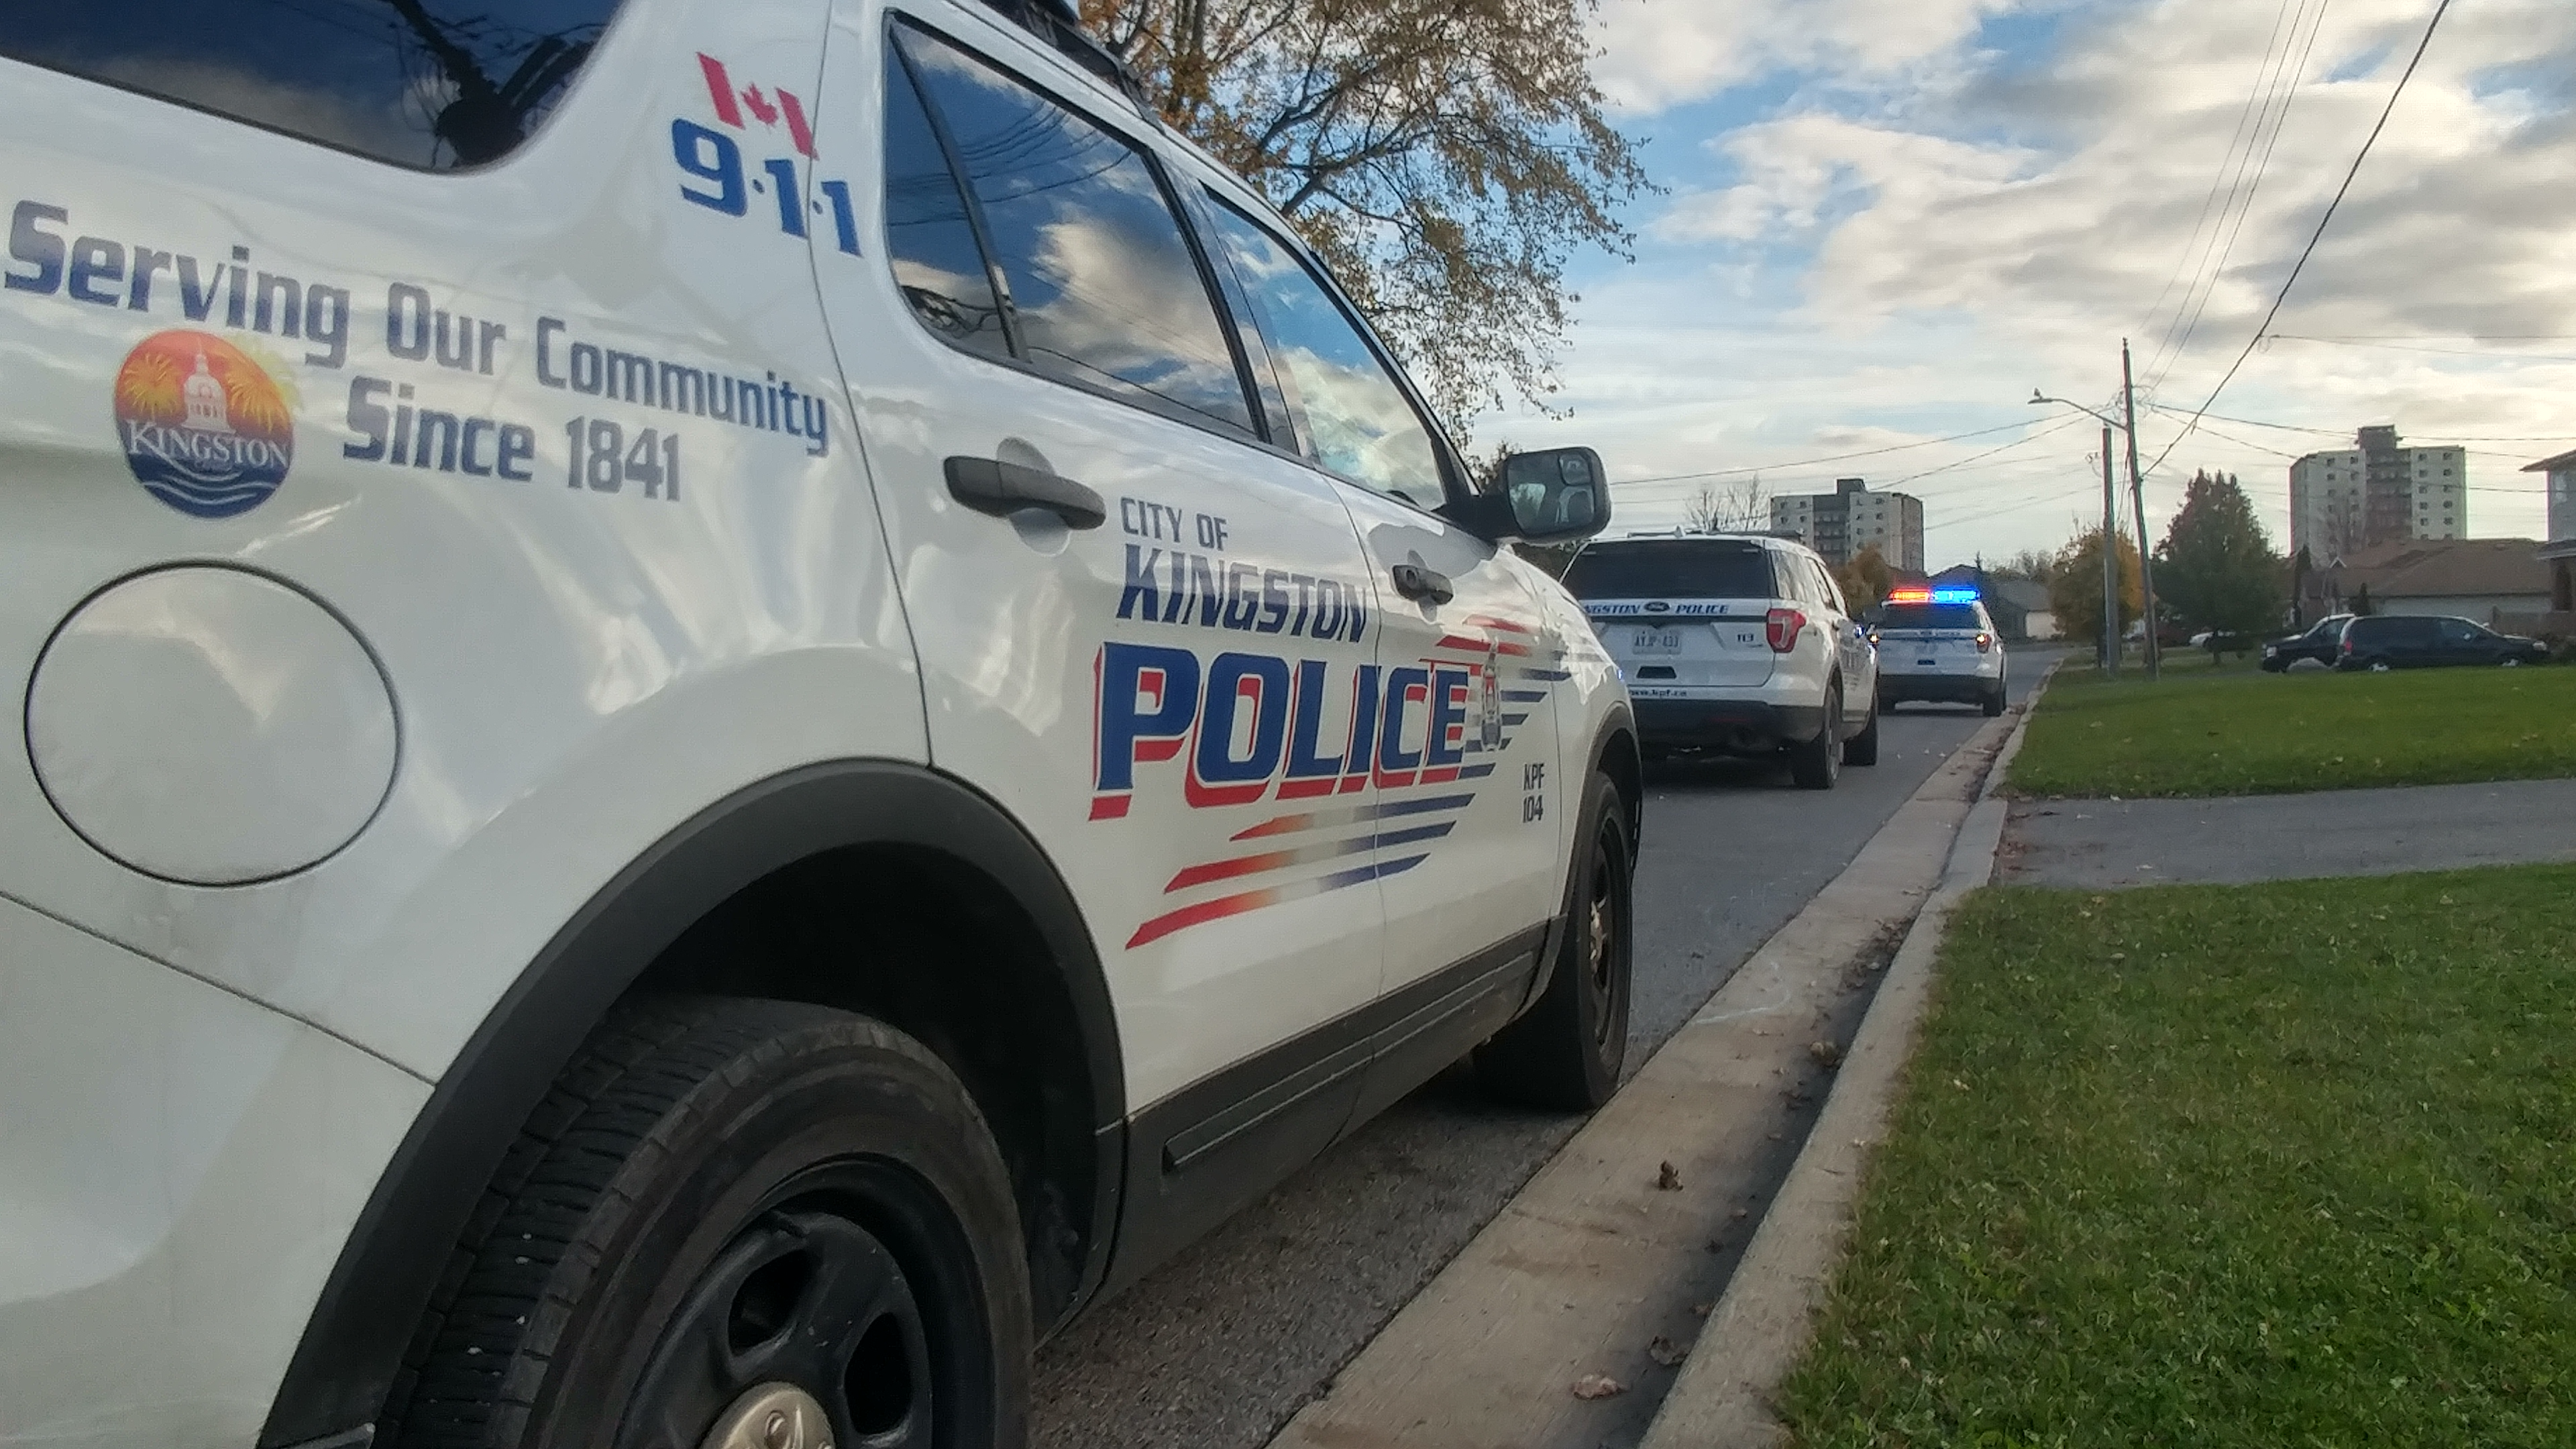 Police find stolen vehicle, other stolen items, after